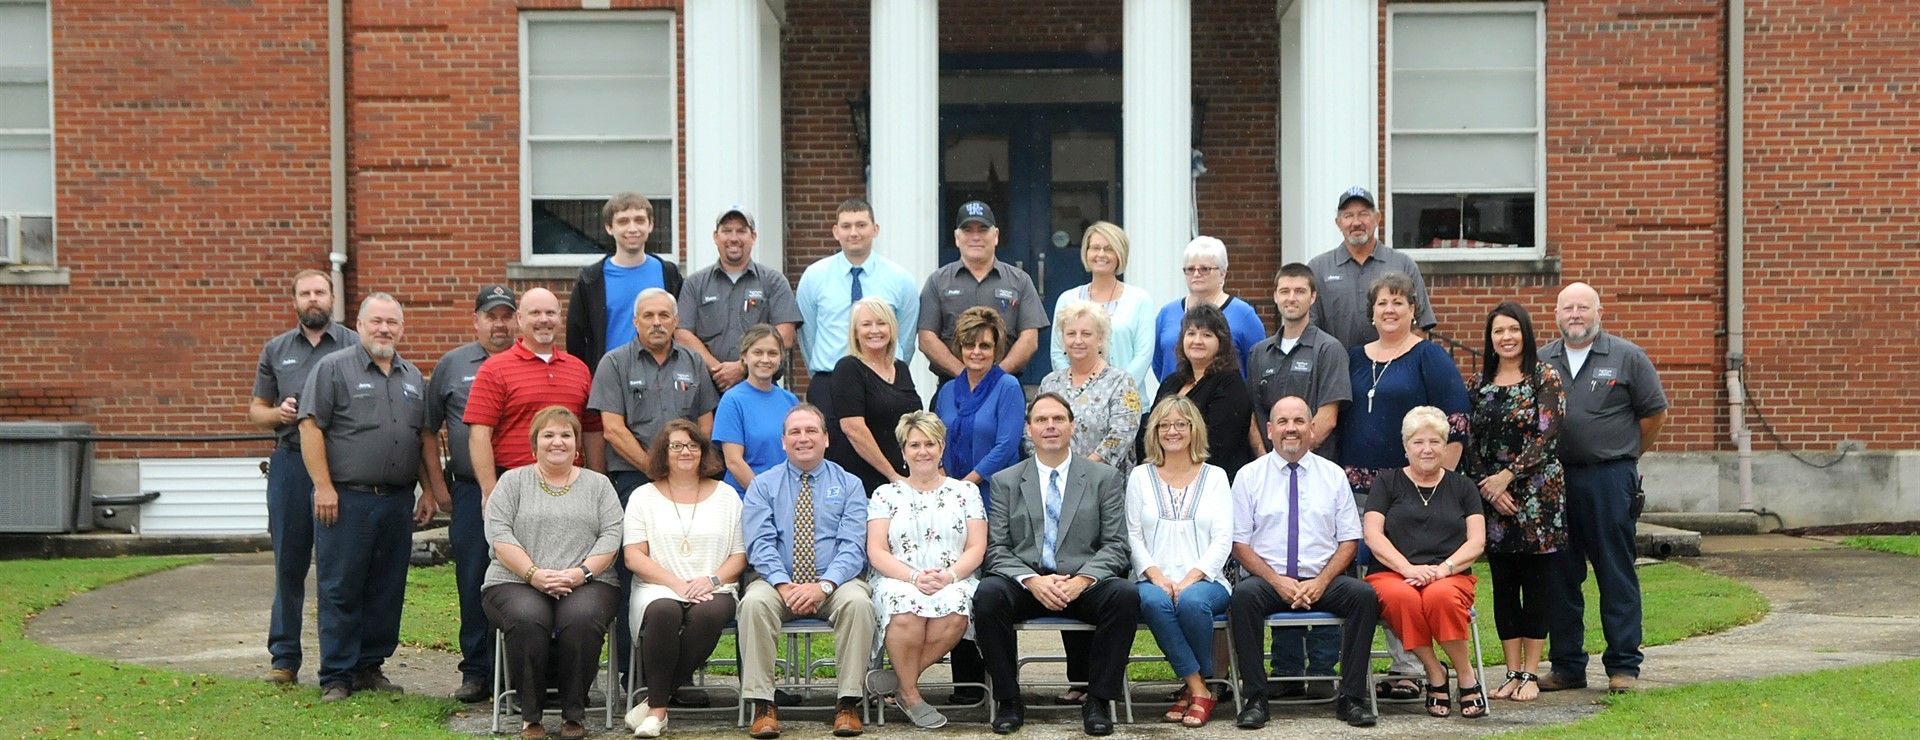 2018-2019 Central Office Staff